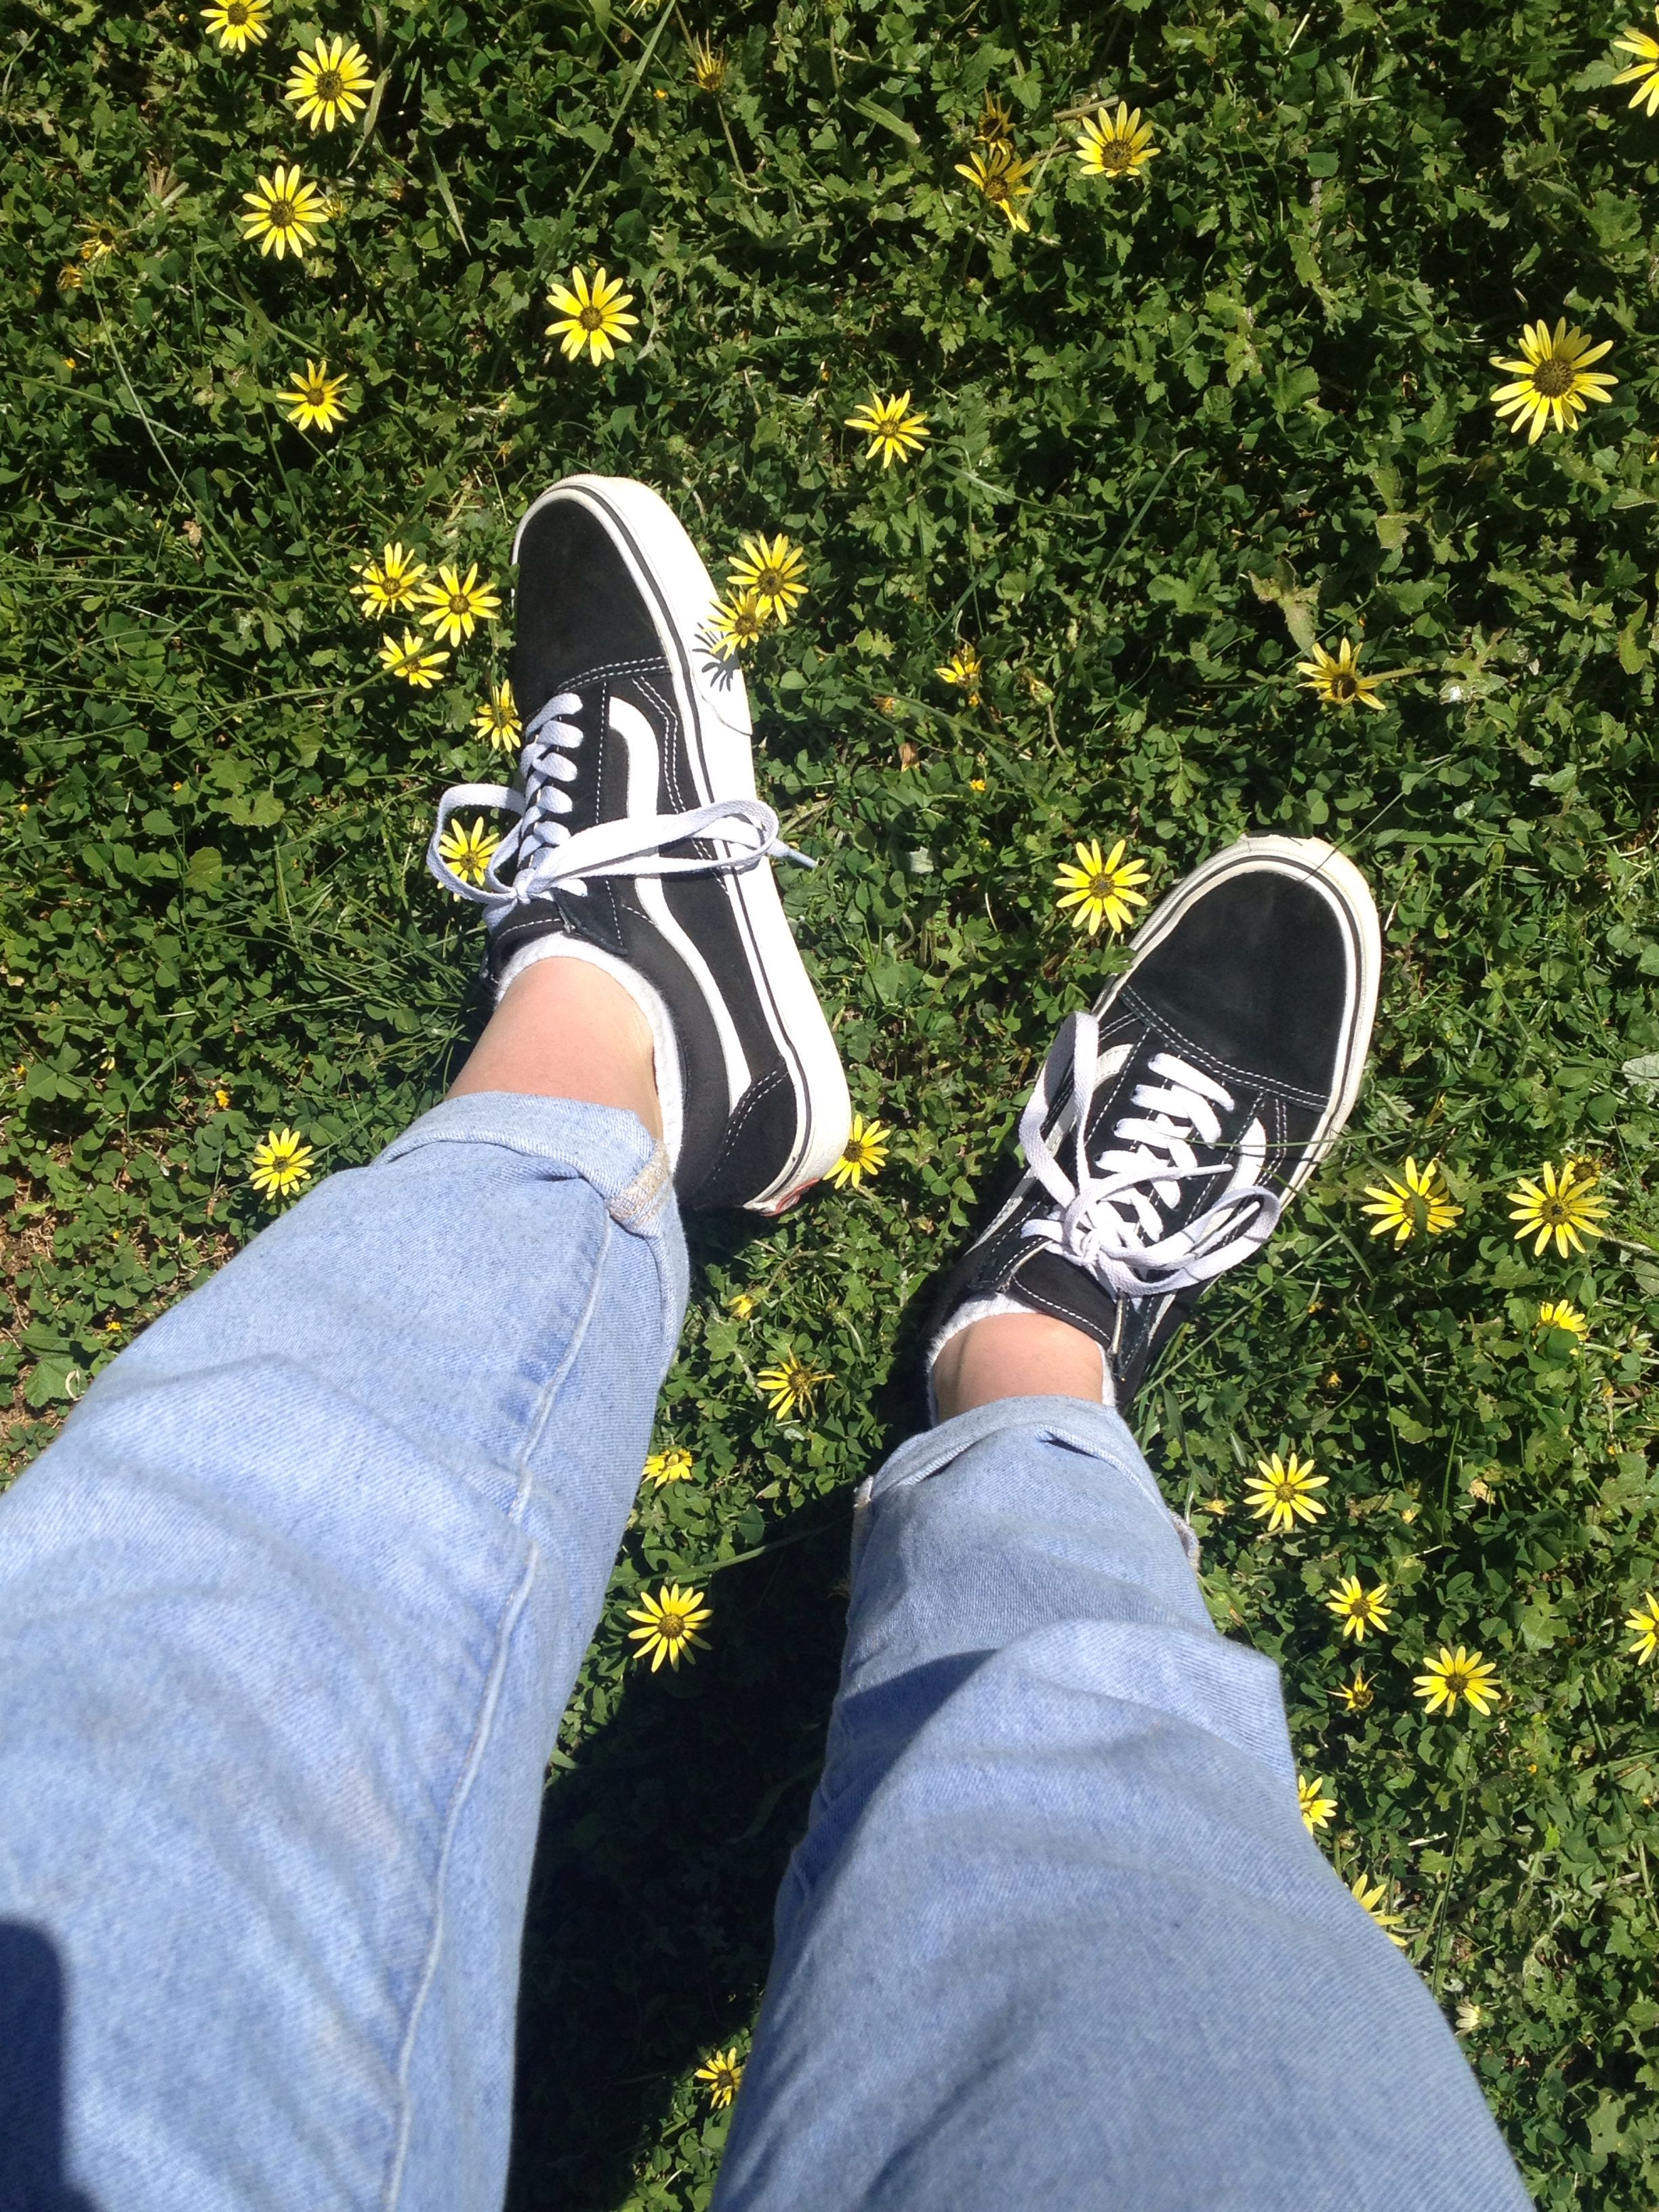 Aesthetic Shoes Vans Flowers With Images Vans Shoes Old